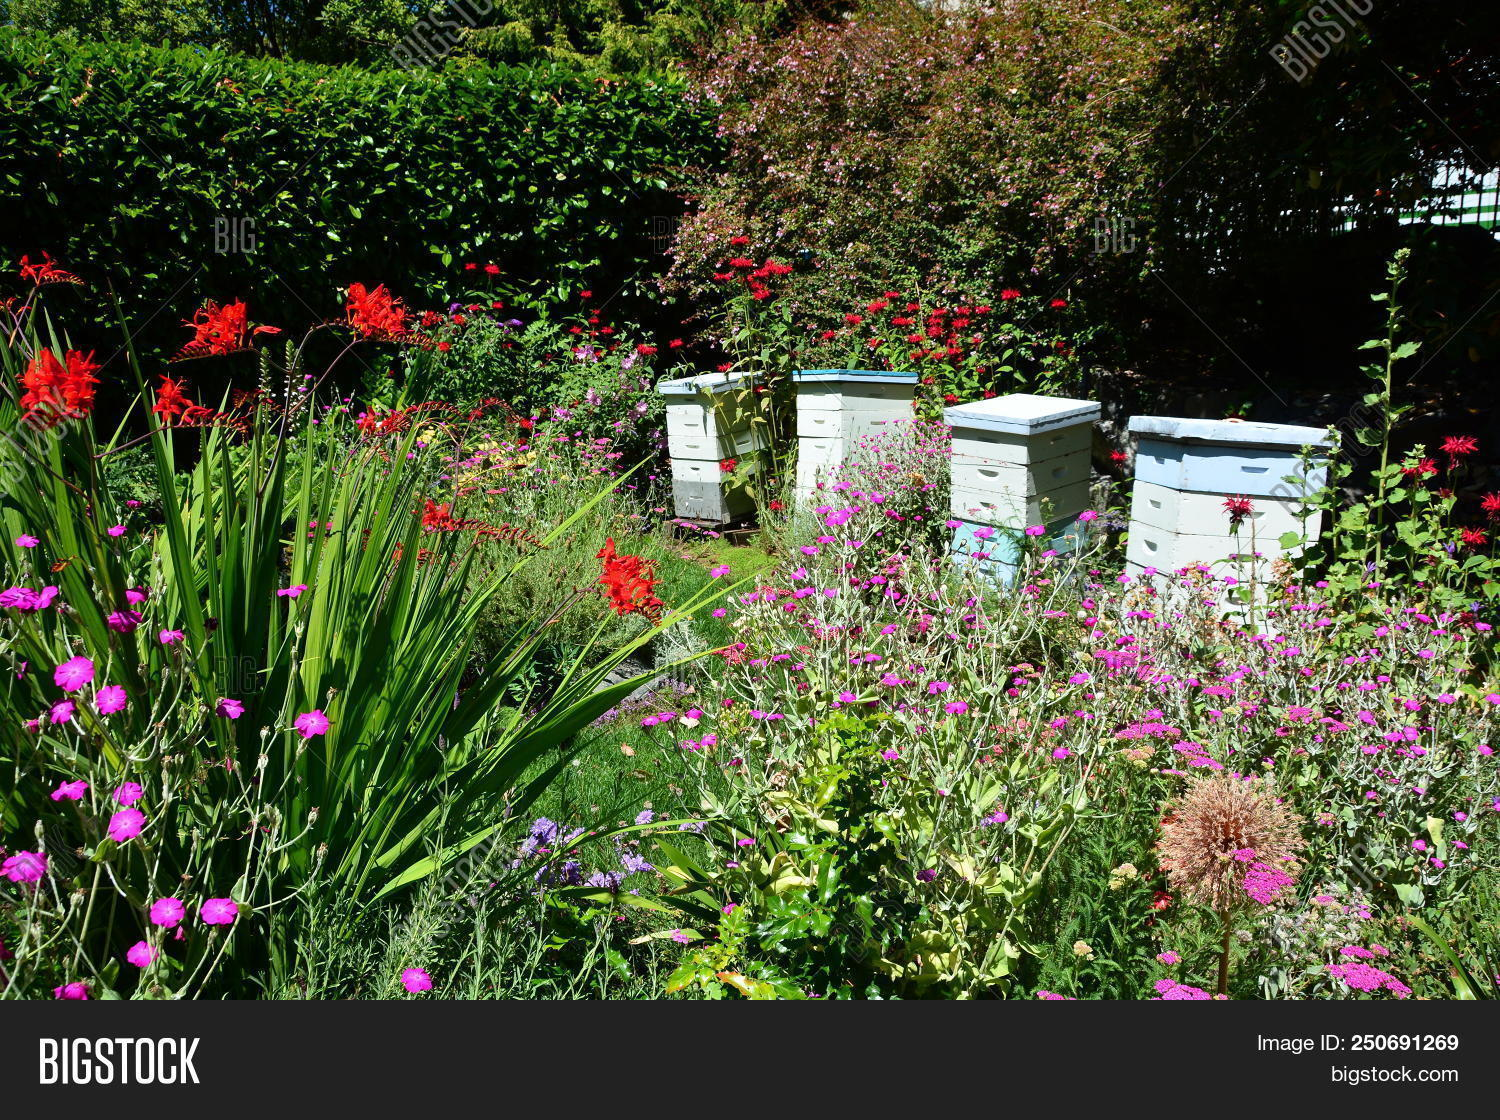 Bee Hives Gardens Image Photo Free Trial Bigstock